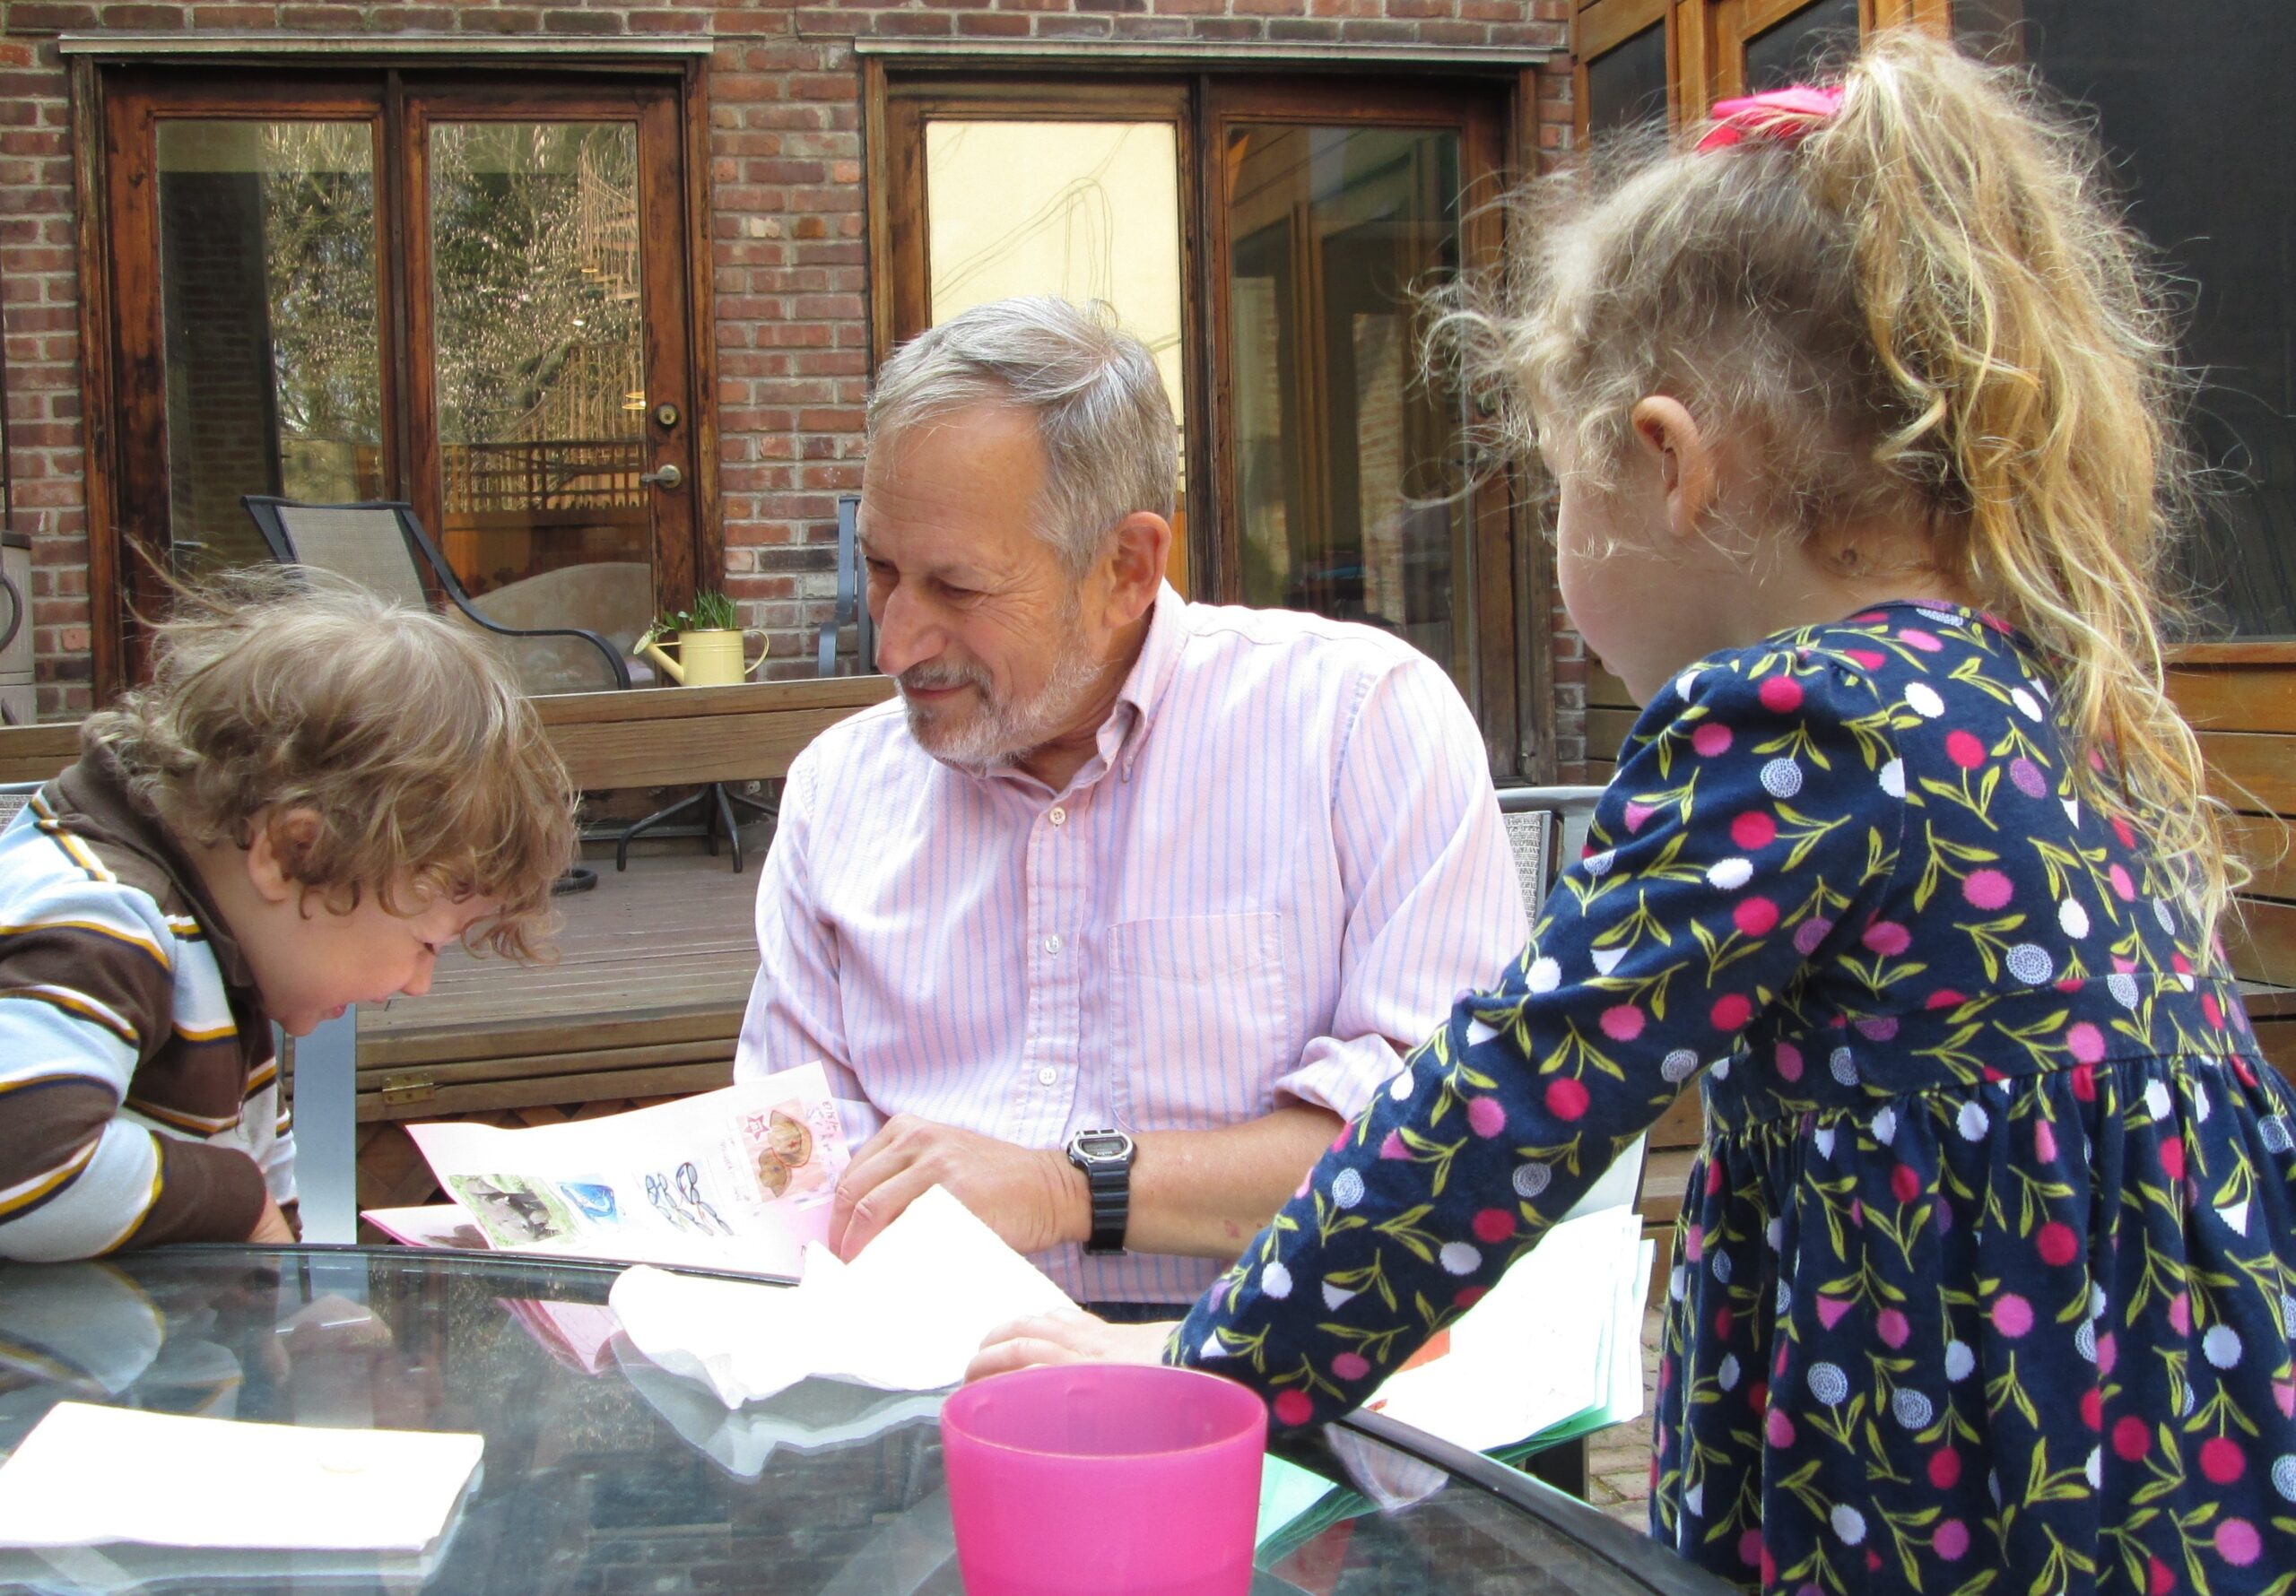 Dr. Mark Cane poses with his two grandkids as they look at some pieces of paper